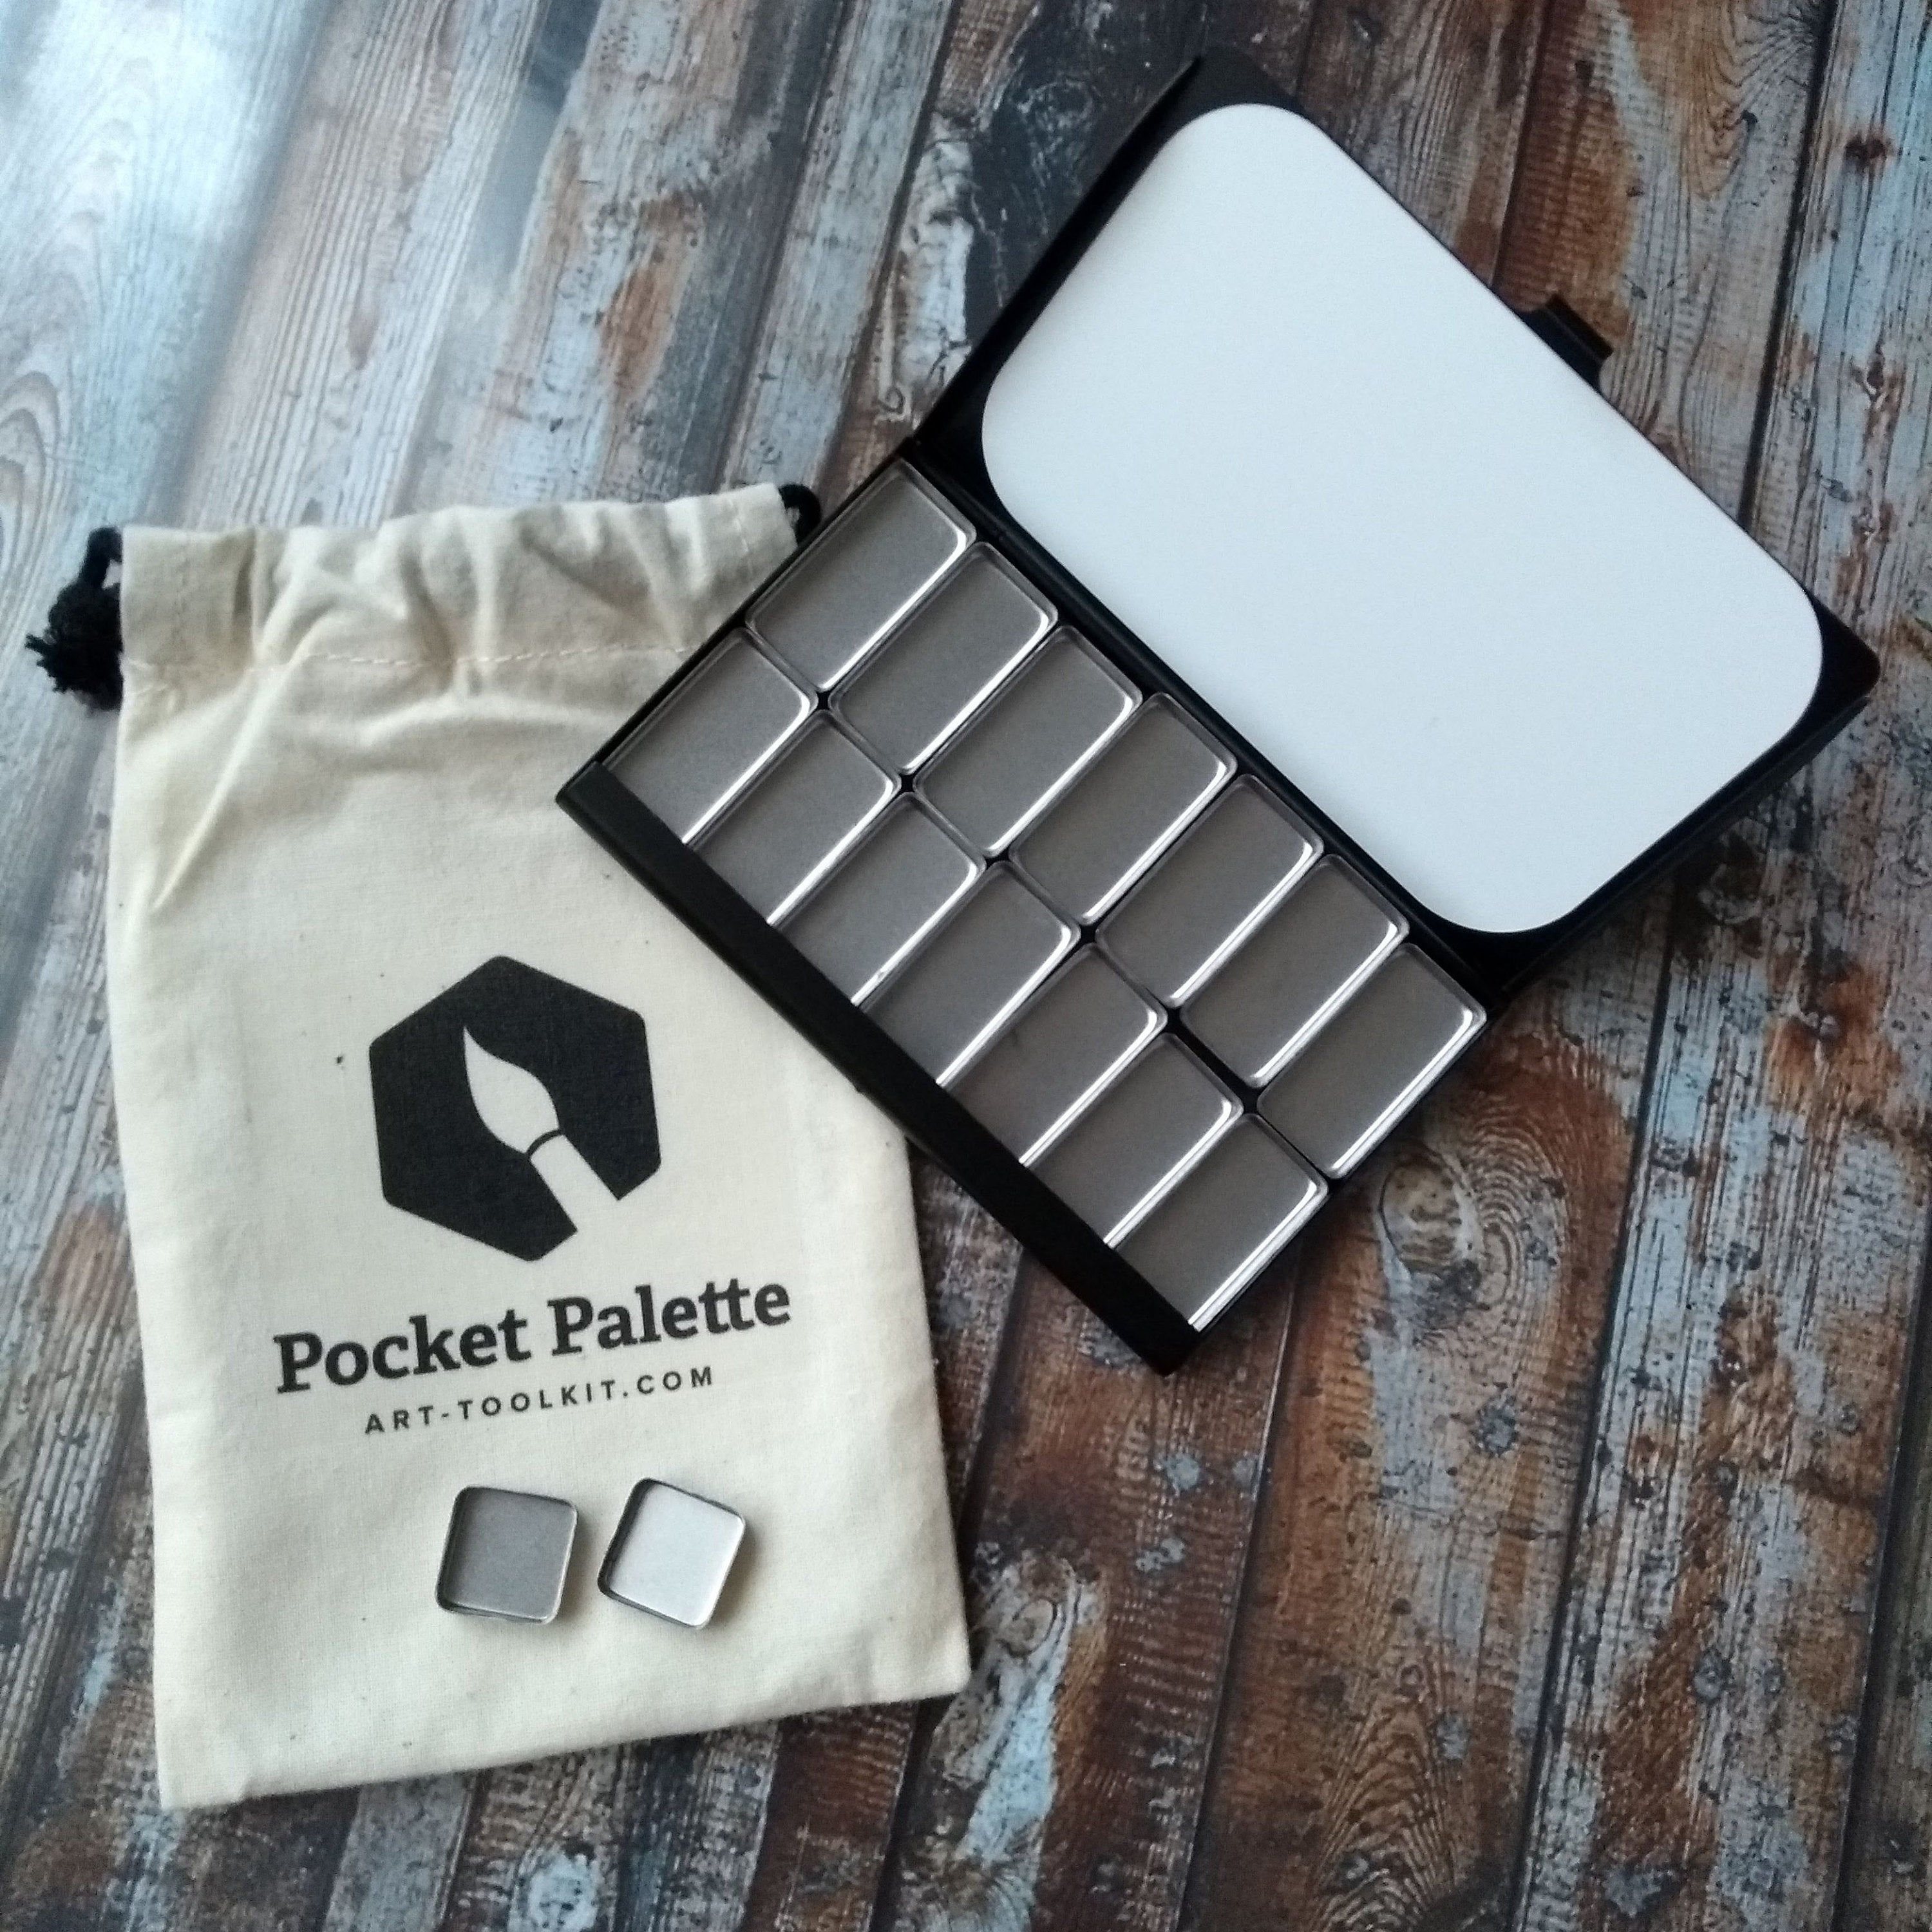 Black pocket palette with 14 stainless steel pans on a